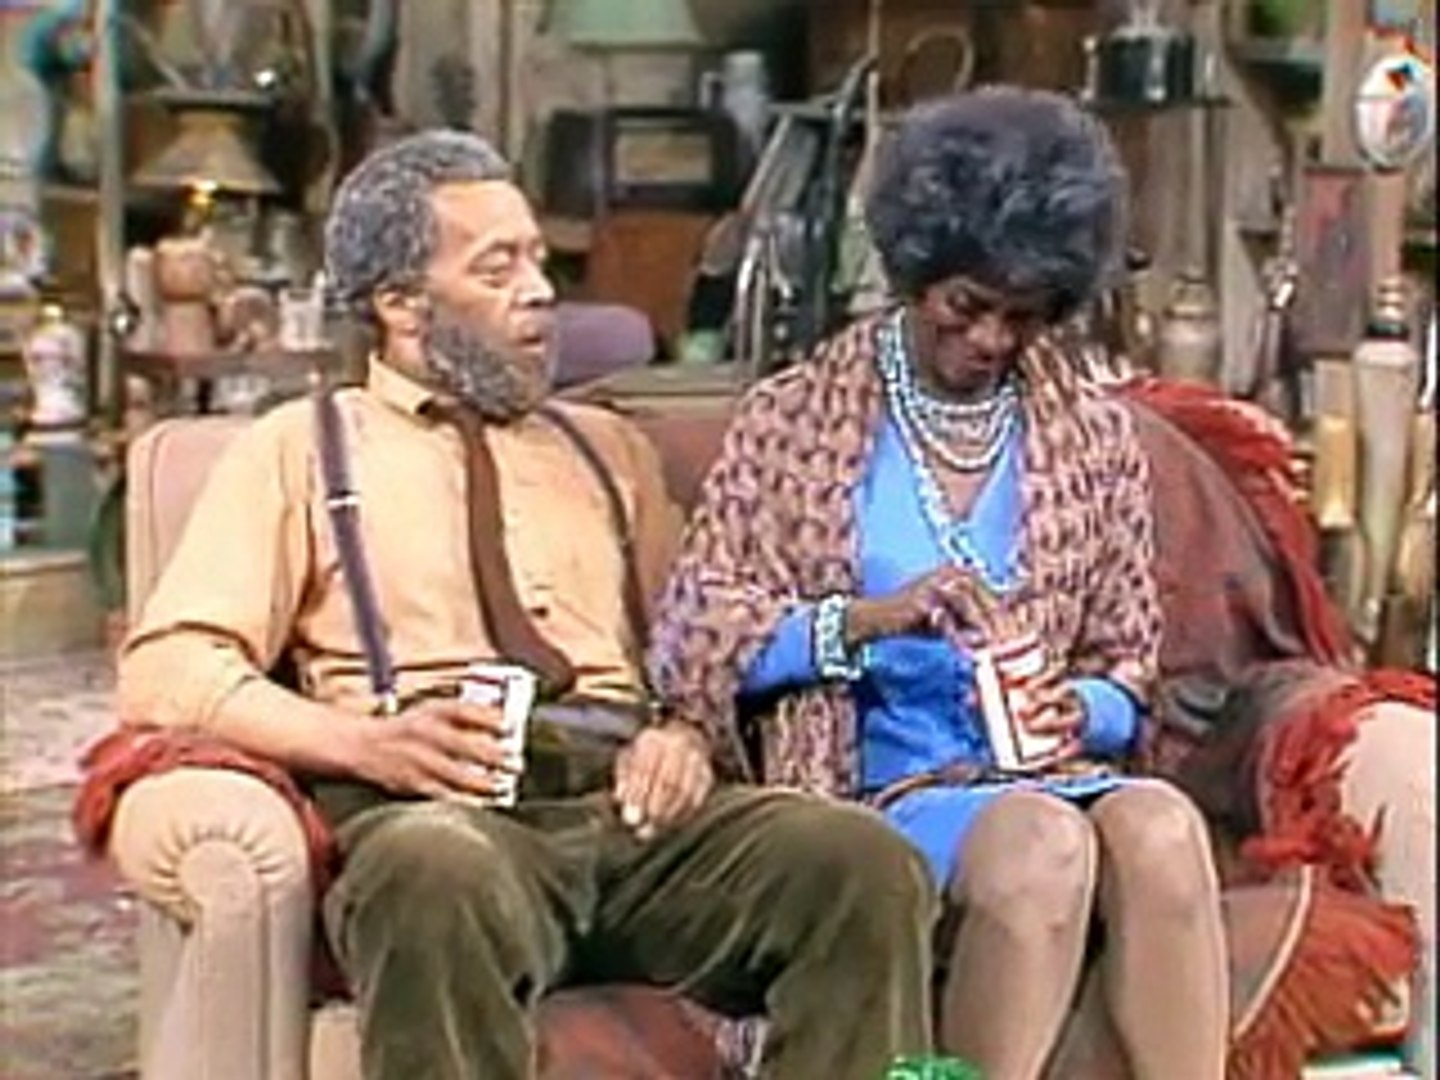 SANFORD AND SON S3 E20